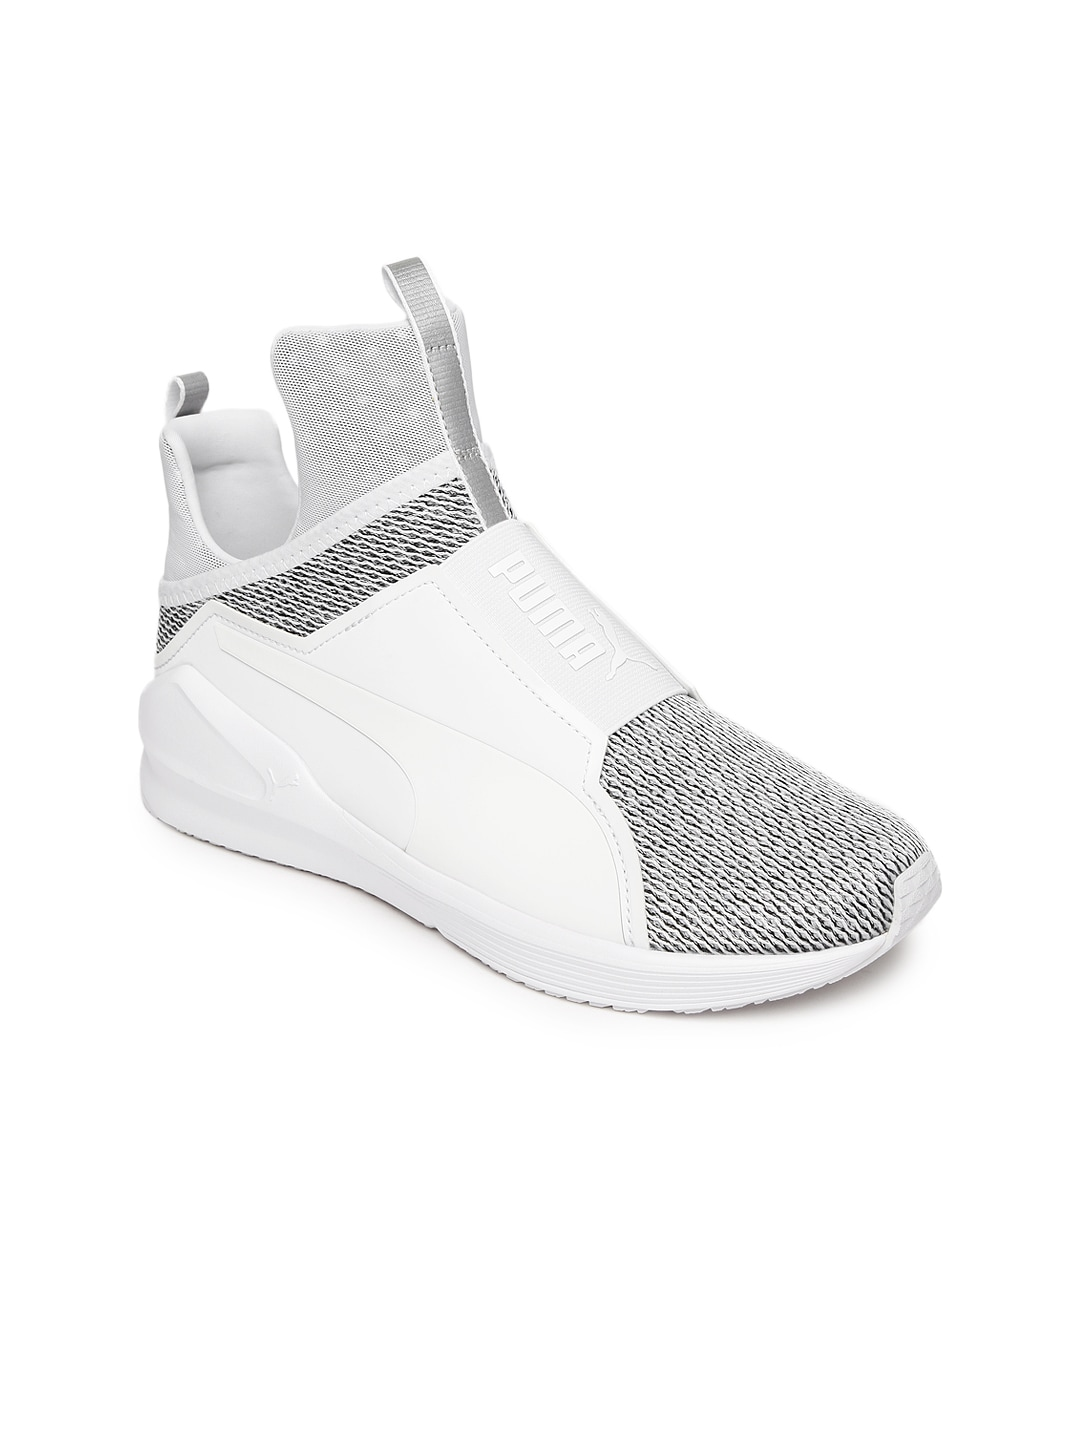 Puma 19030302 Women White And Grey Fierce Knit High Top Training Shoes-  Price in India 72d2a36ac